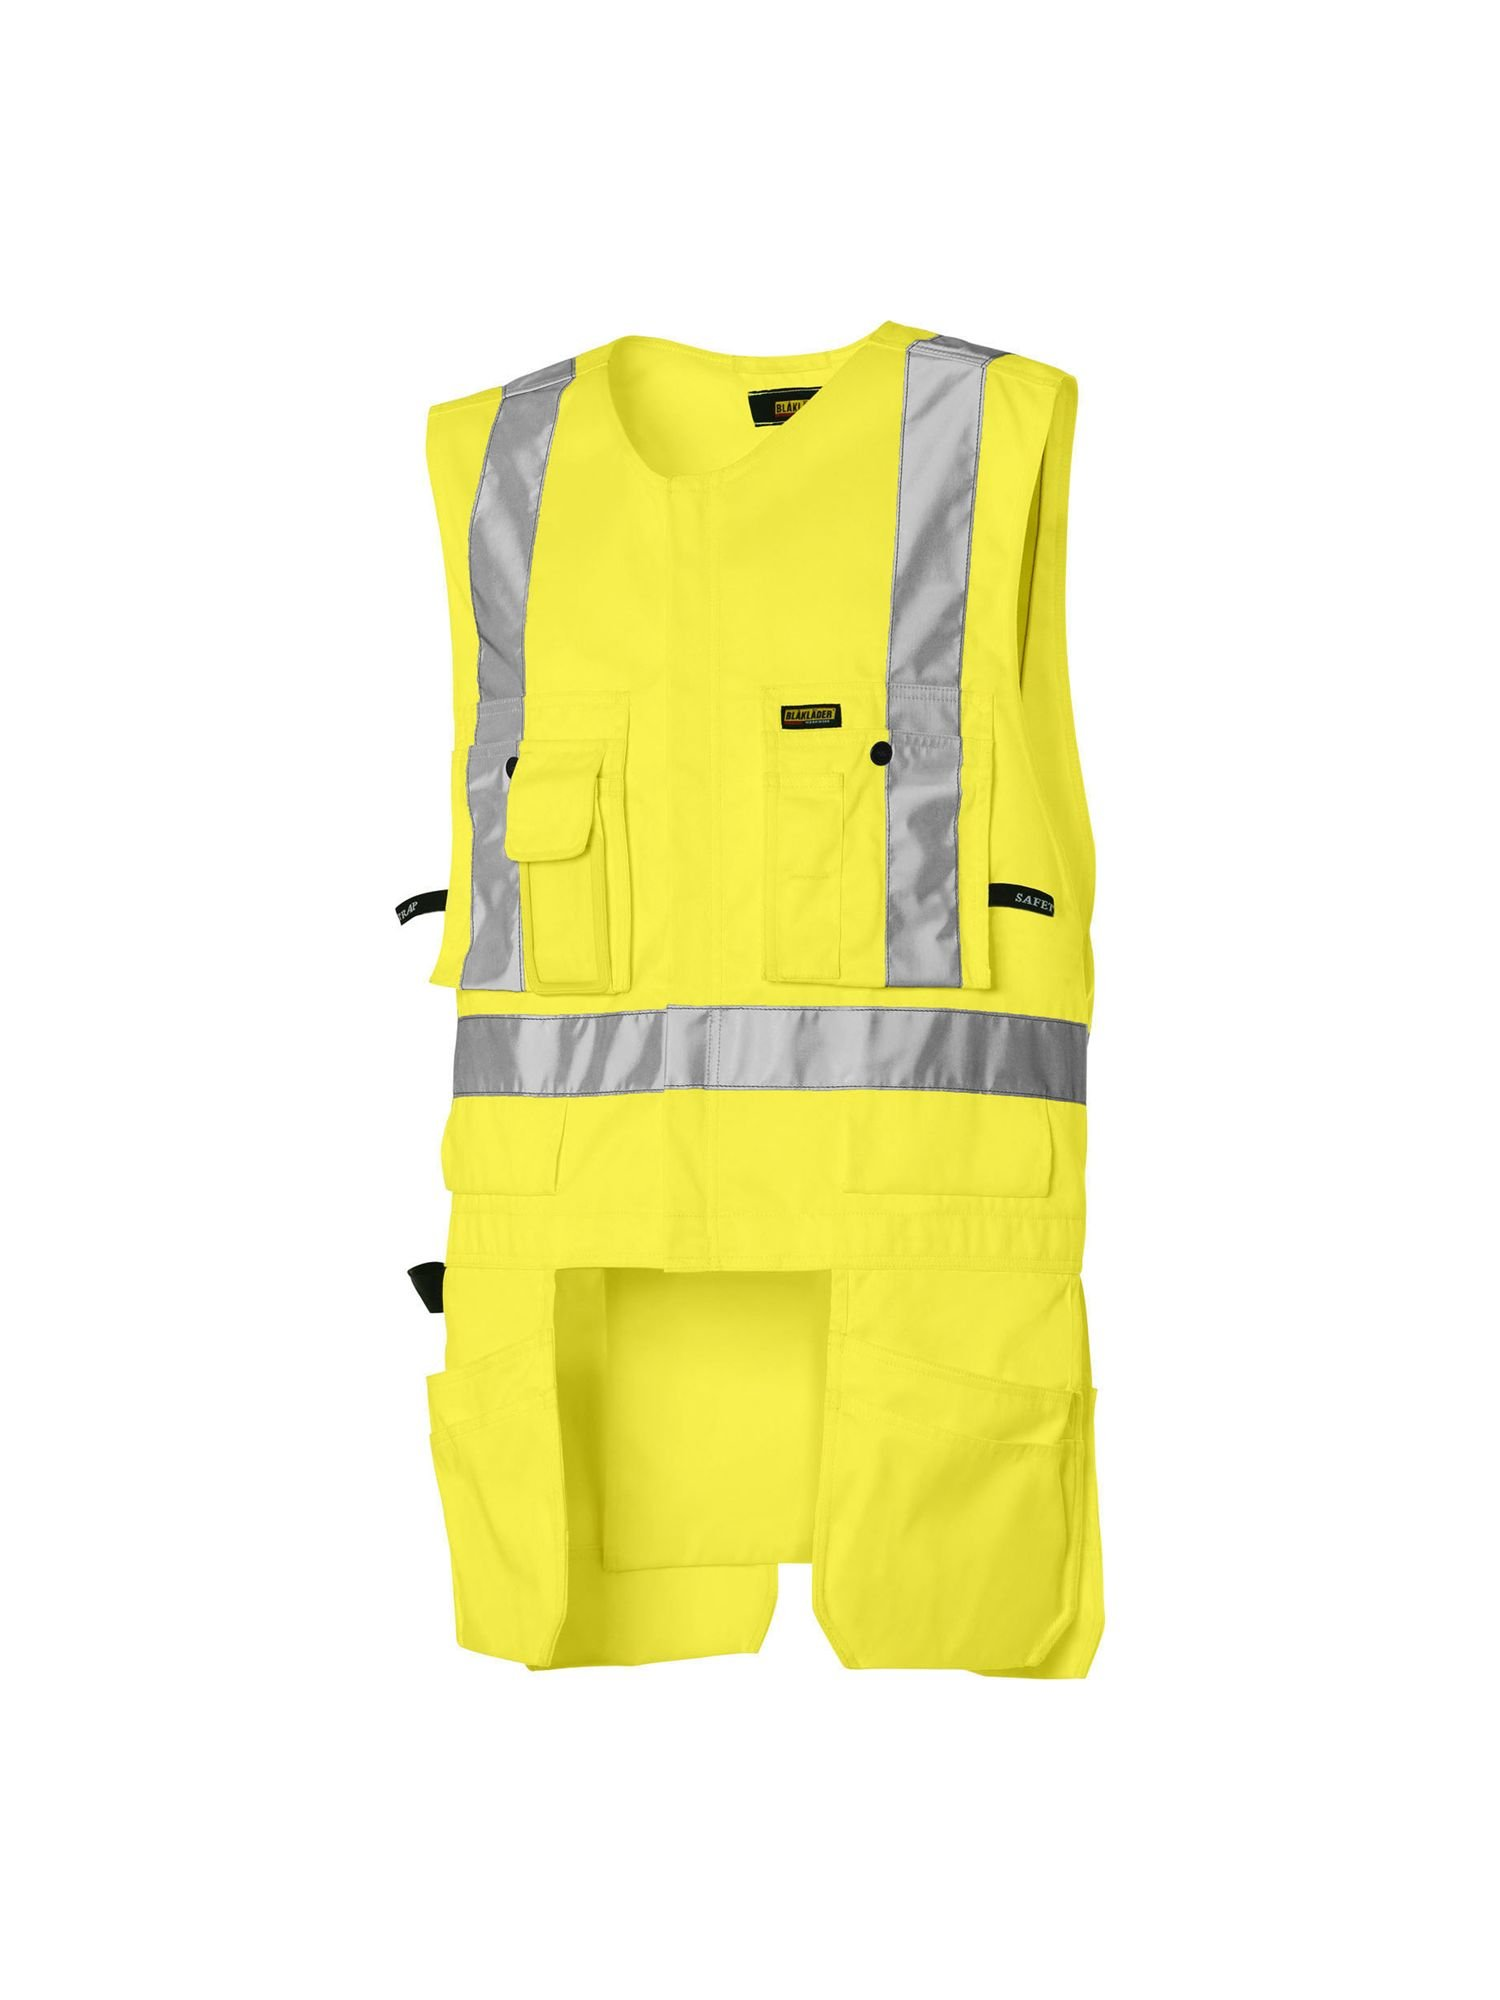 Blaklader Yellow Size XXL Hi-Vis Utility Vest for Carpentry Construction